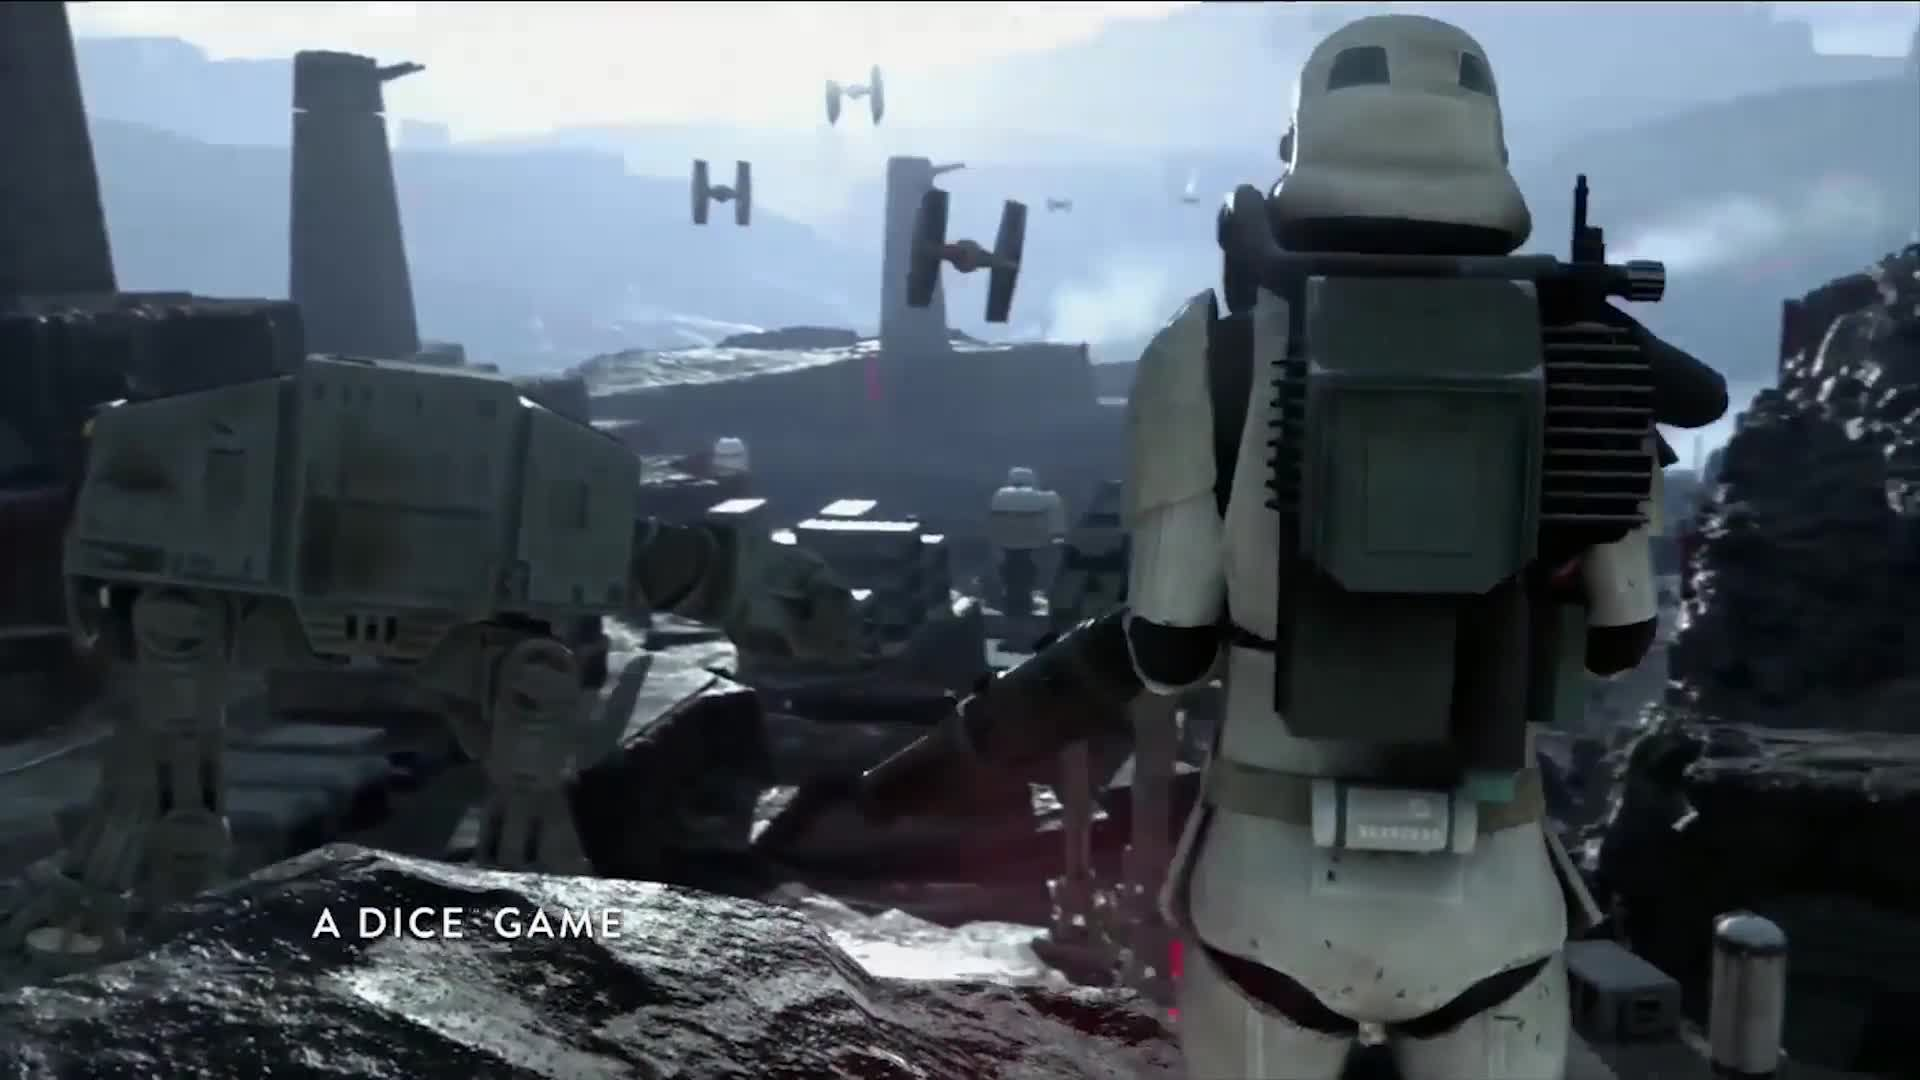 Star Wars Battlefront's latest gameplay trailer picks up where the beta left off